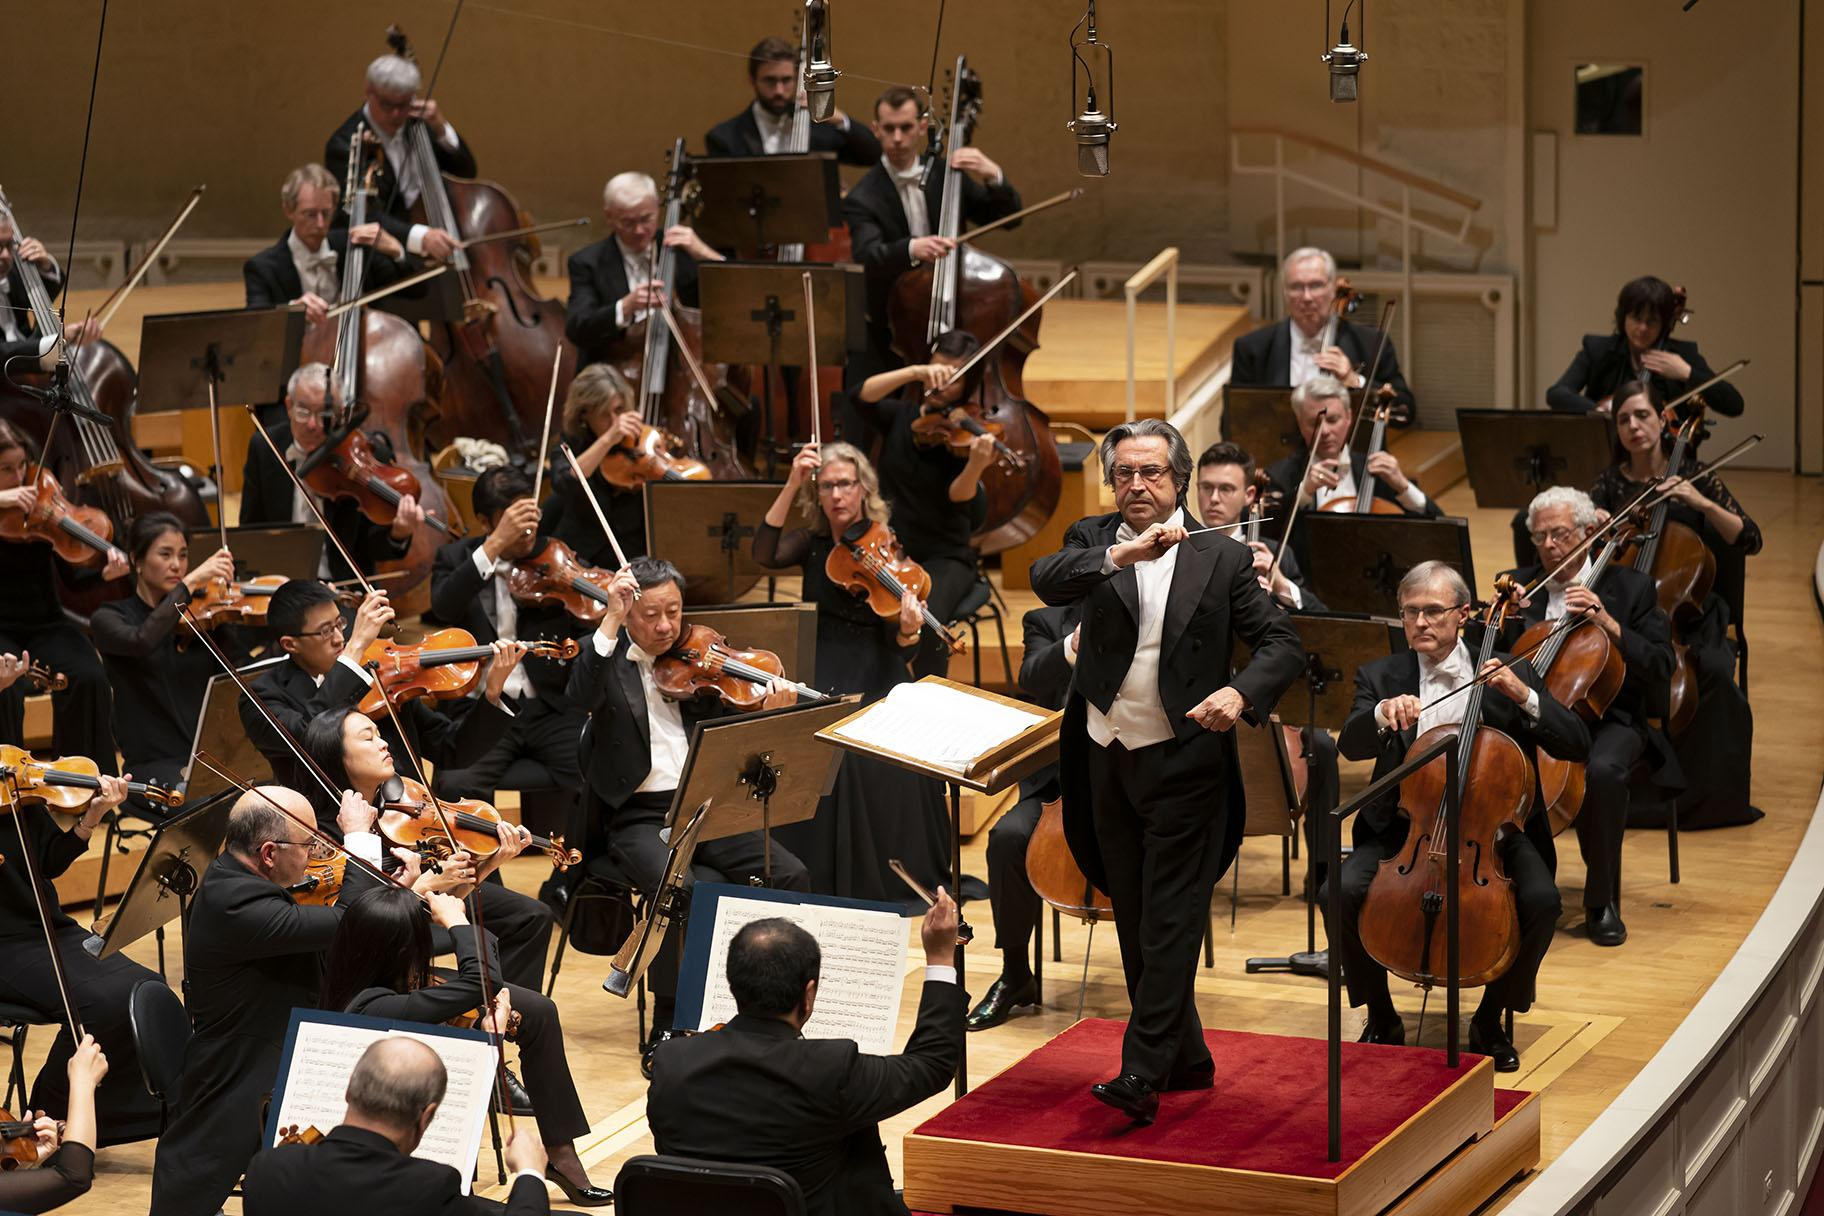 Zell Music Director Riccardo Muti leads the CSO in an all-Beethoven program on Sept. 26, 2019. (Photo by Todd Rosenberg)